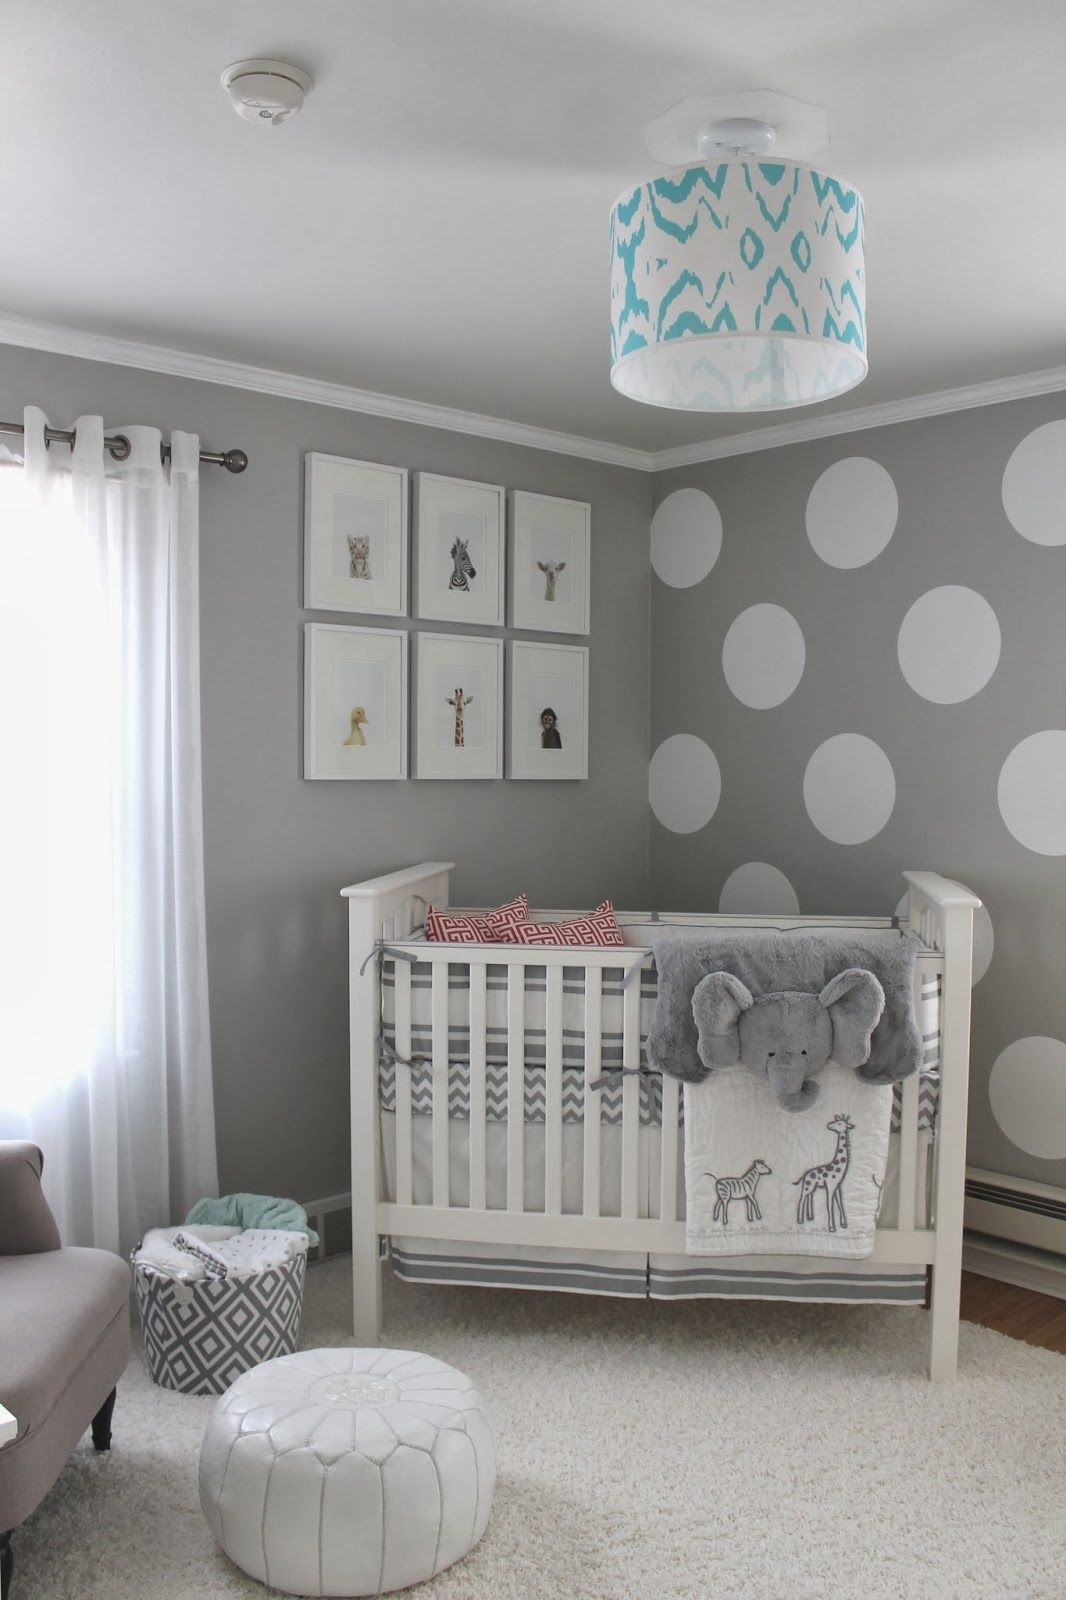 Gray baby room pictures photos and images for facebook - Chambre bebe garcon vintage ...